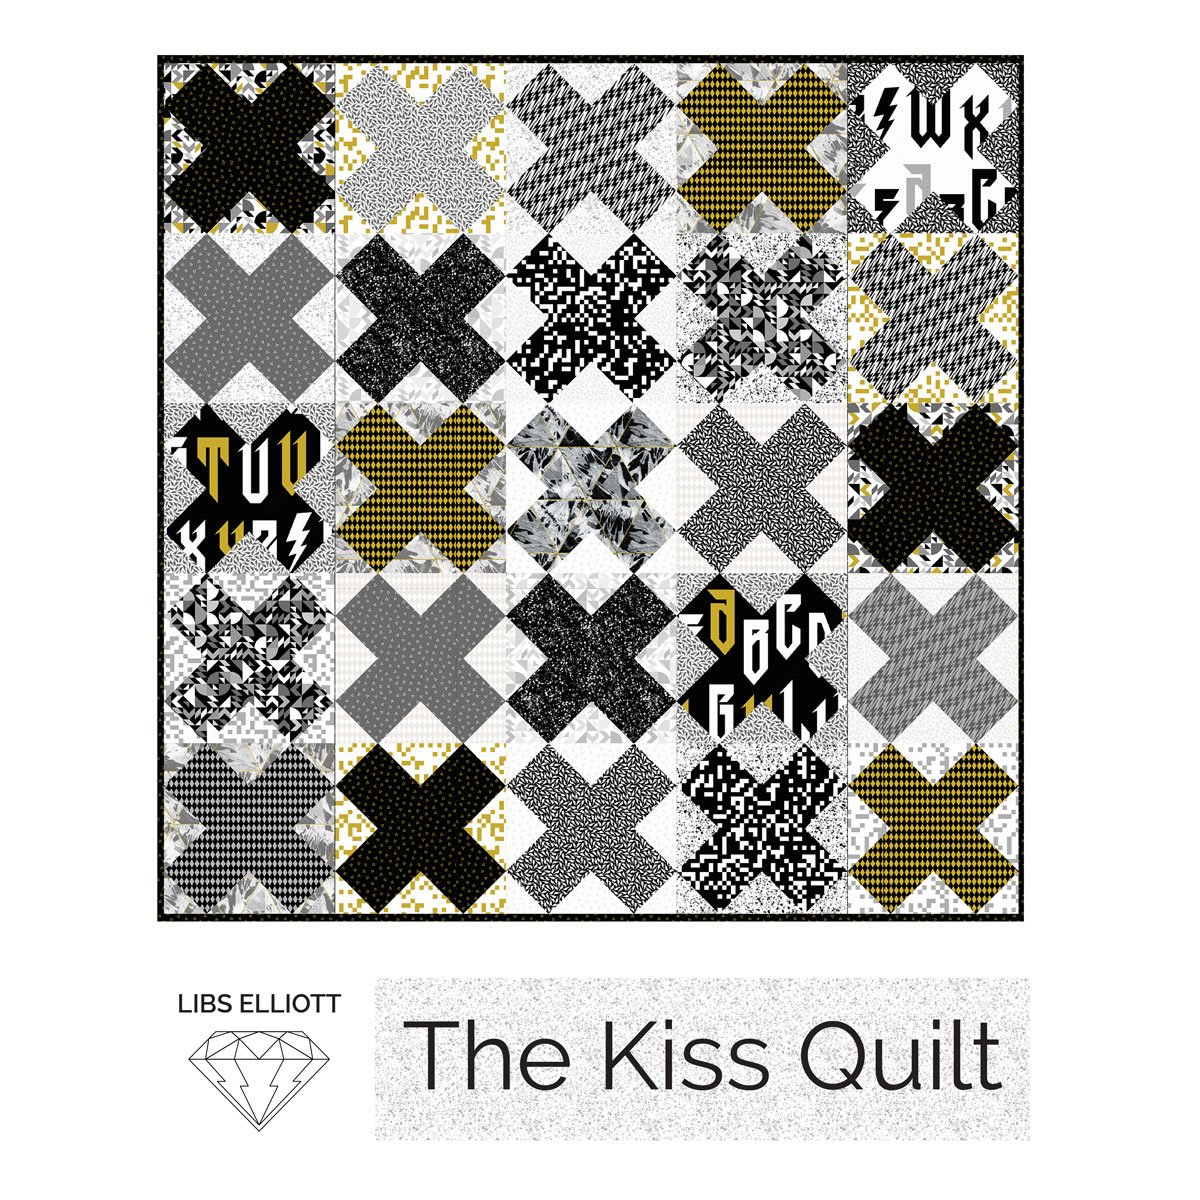 The Kiss Quilt by Libs Elliott